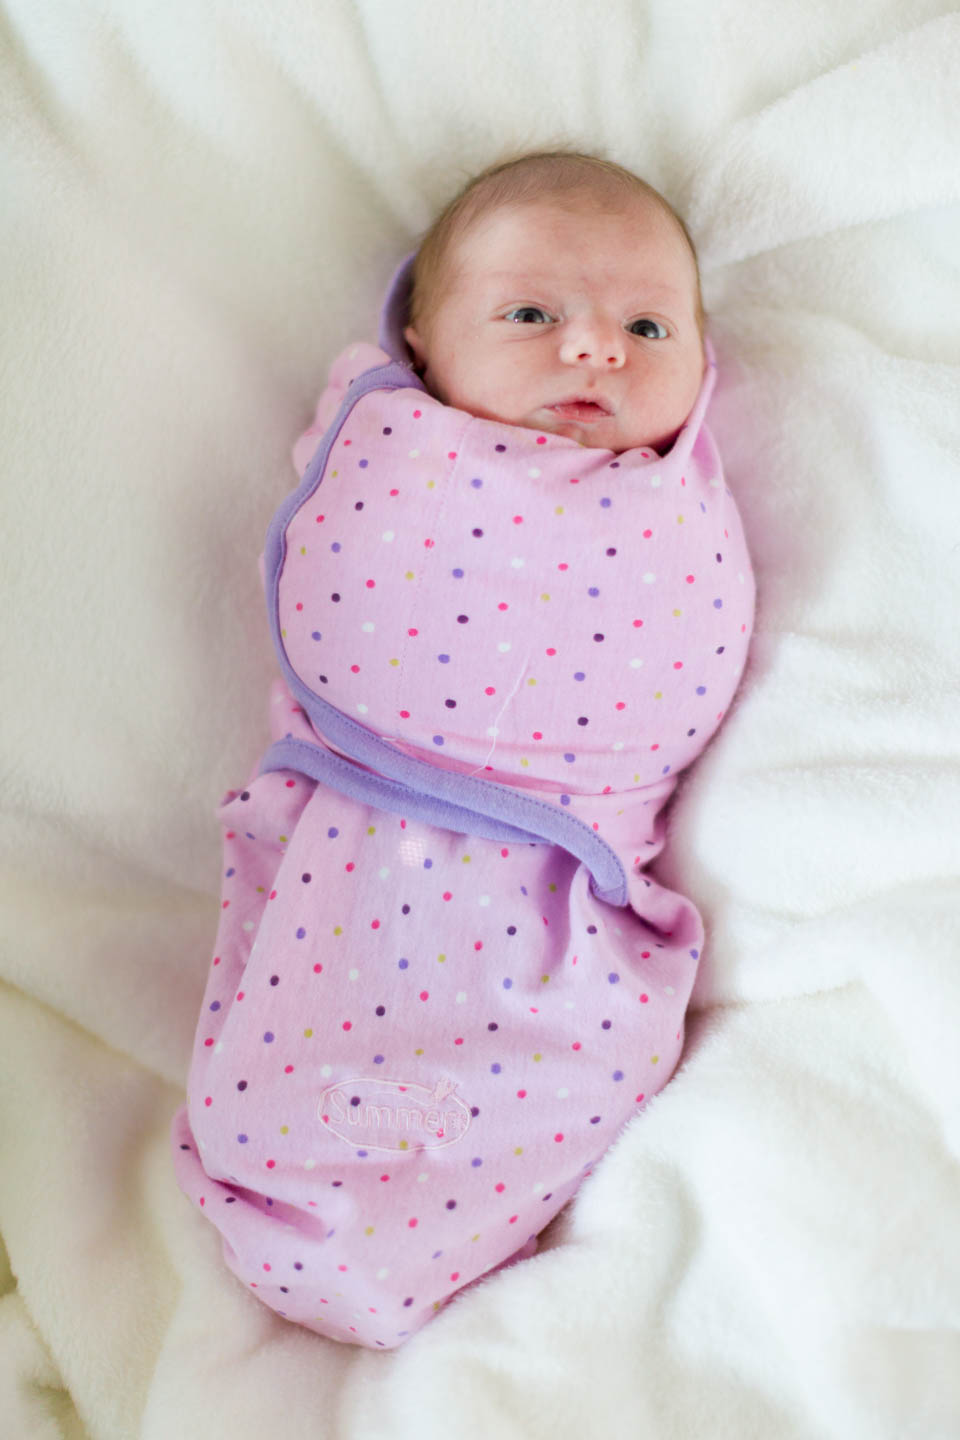 Baby Britain is bundled in a pink blanket